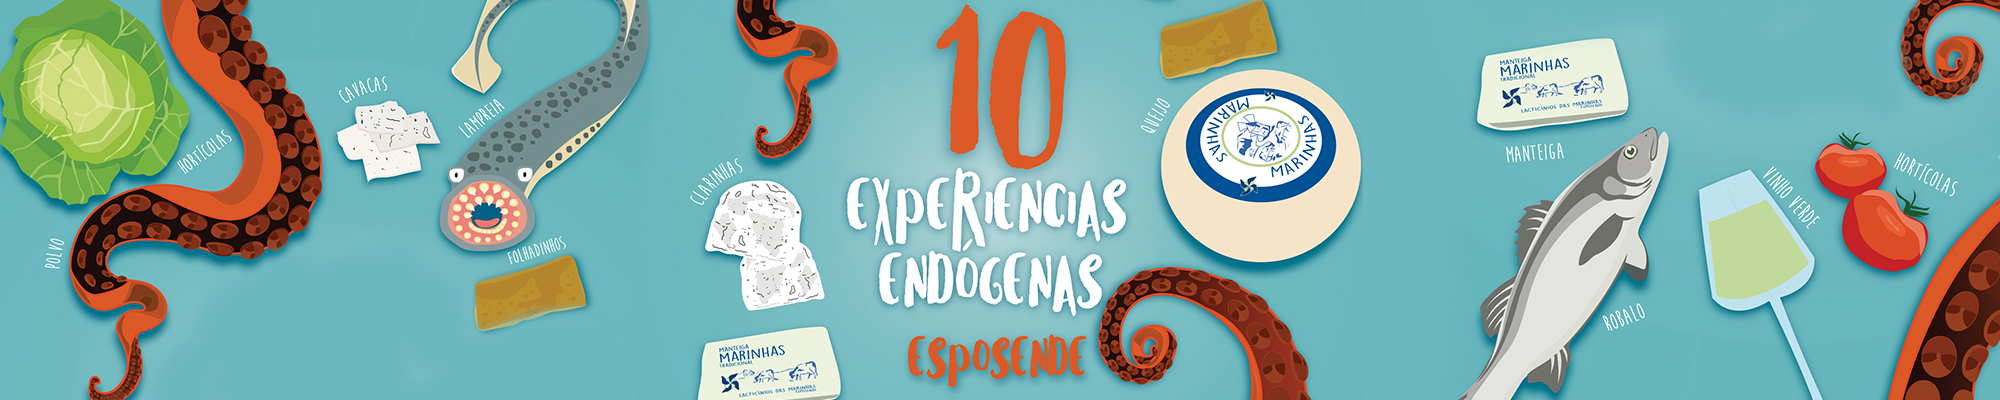 10 endogenous experiences in Esposende